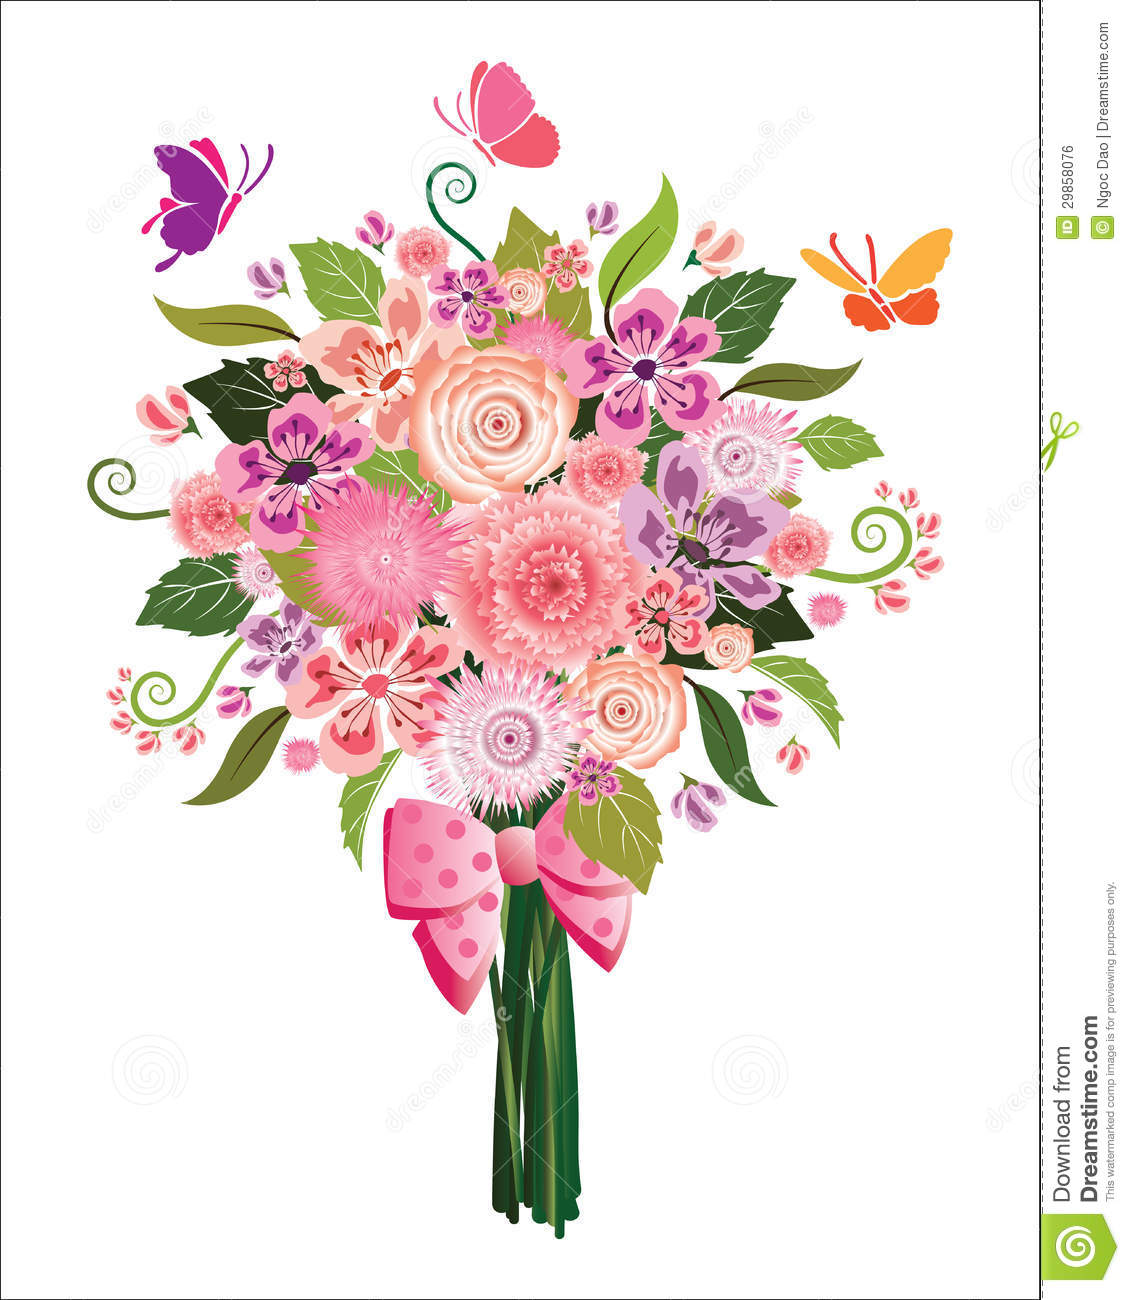 912 Flower Bouquet free clipart.